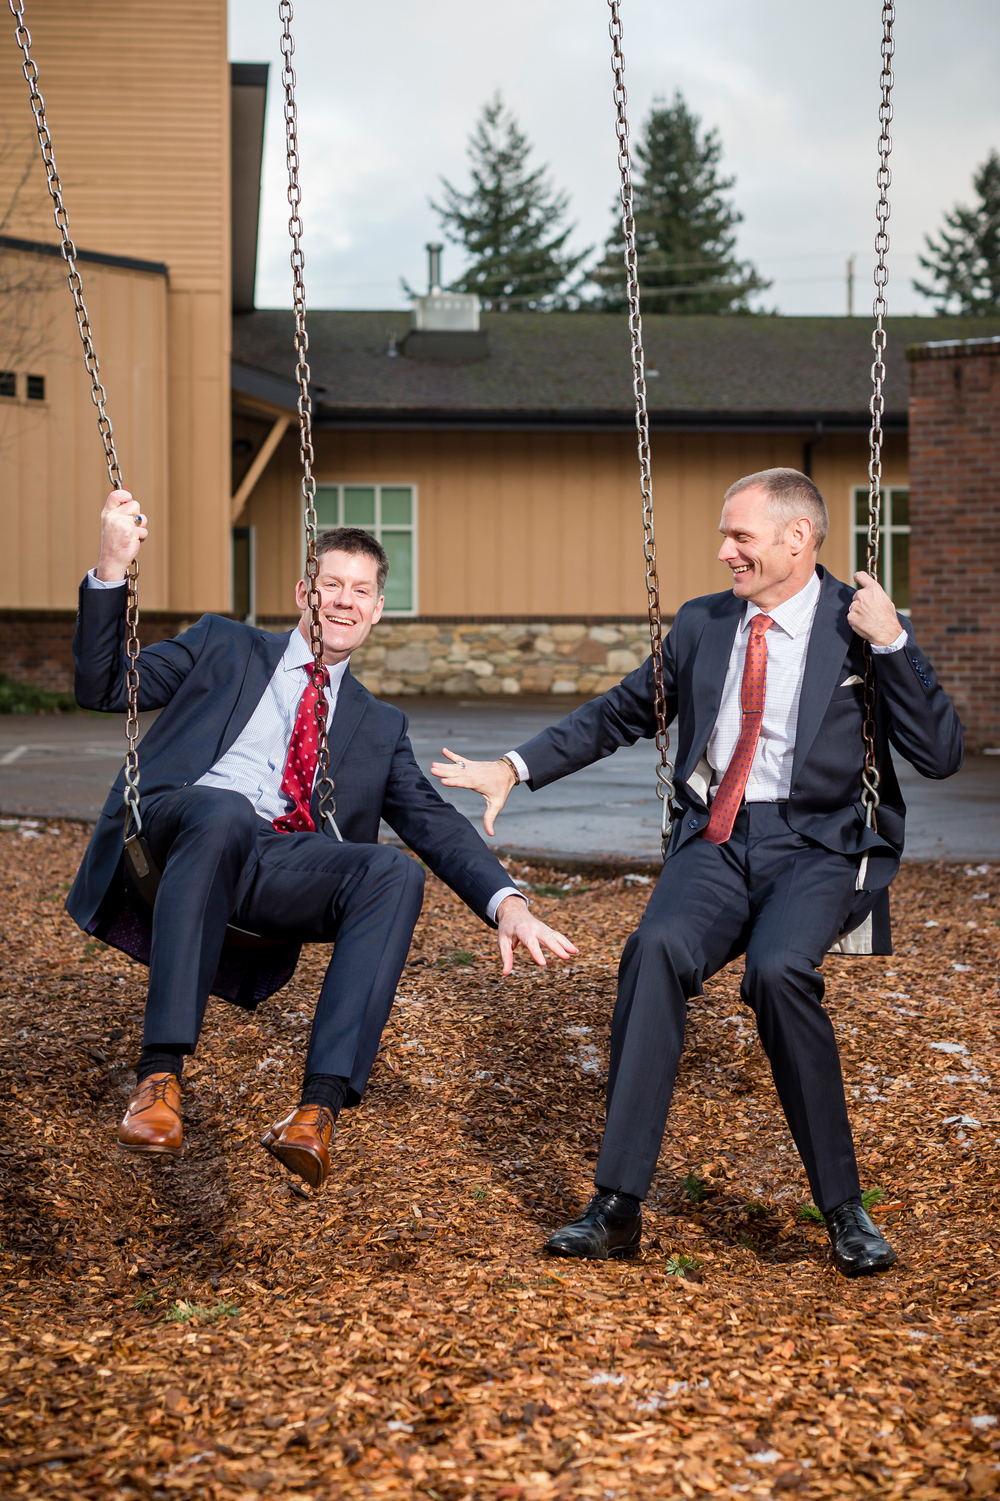 On Tuesday, January 5th, 2016  Superintendent for Vancouver Public Schools Dr. Steve Webb (rt) and Chief of Staff Tom Hagley Jr. (lt) pose for a photo at Fruit Valley Elementary School in Vancouver, WA. NashCO Photo for Education Week.